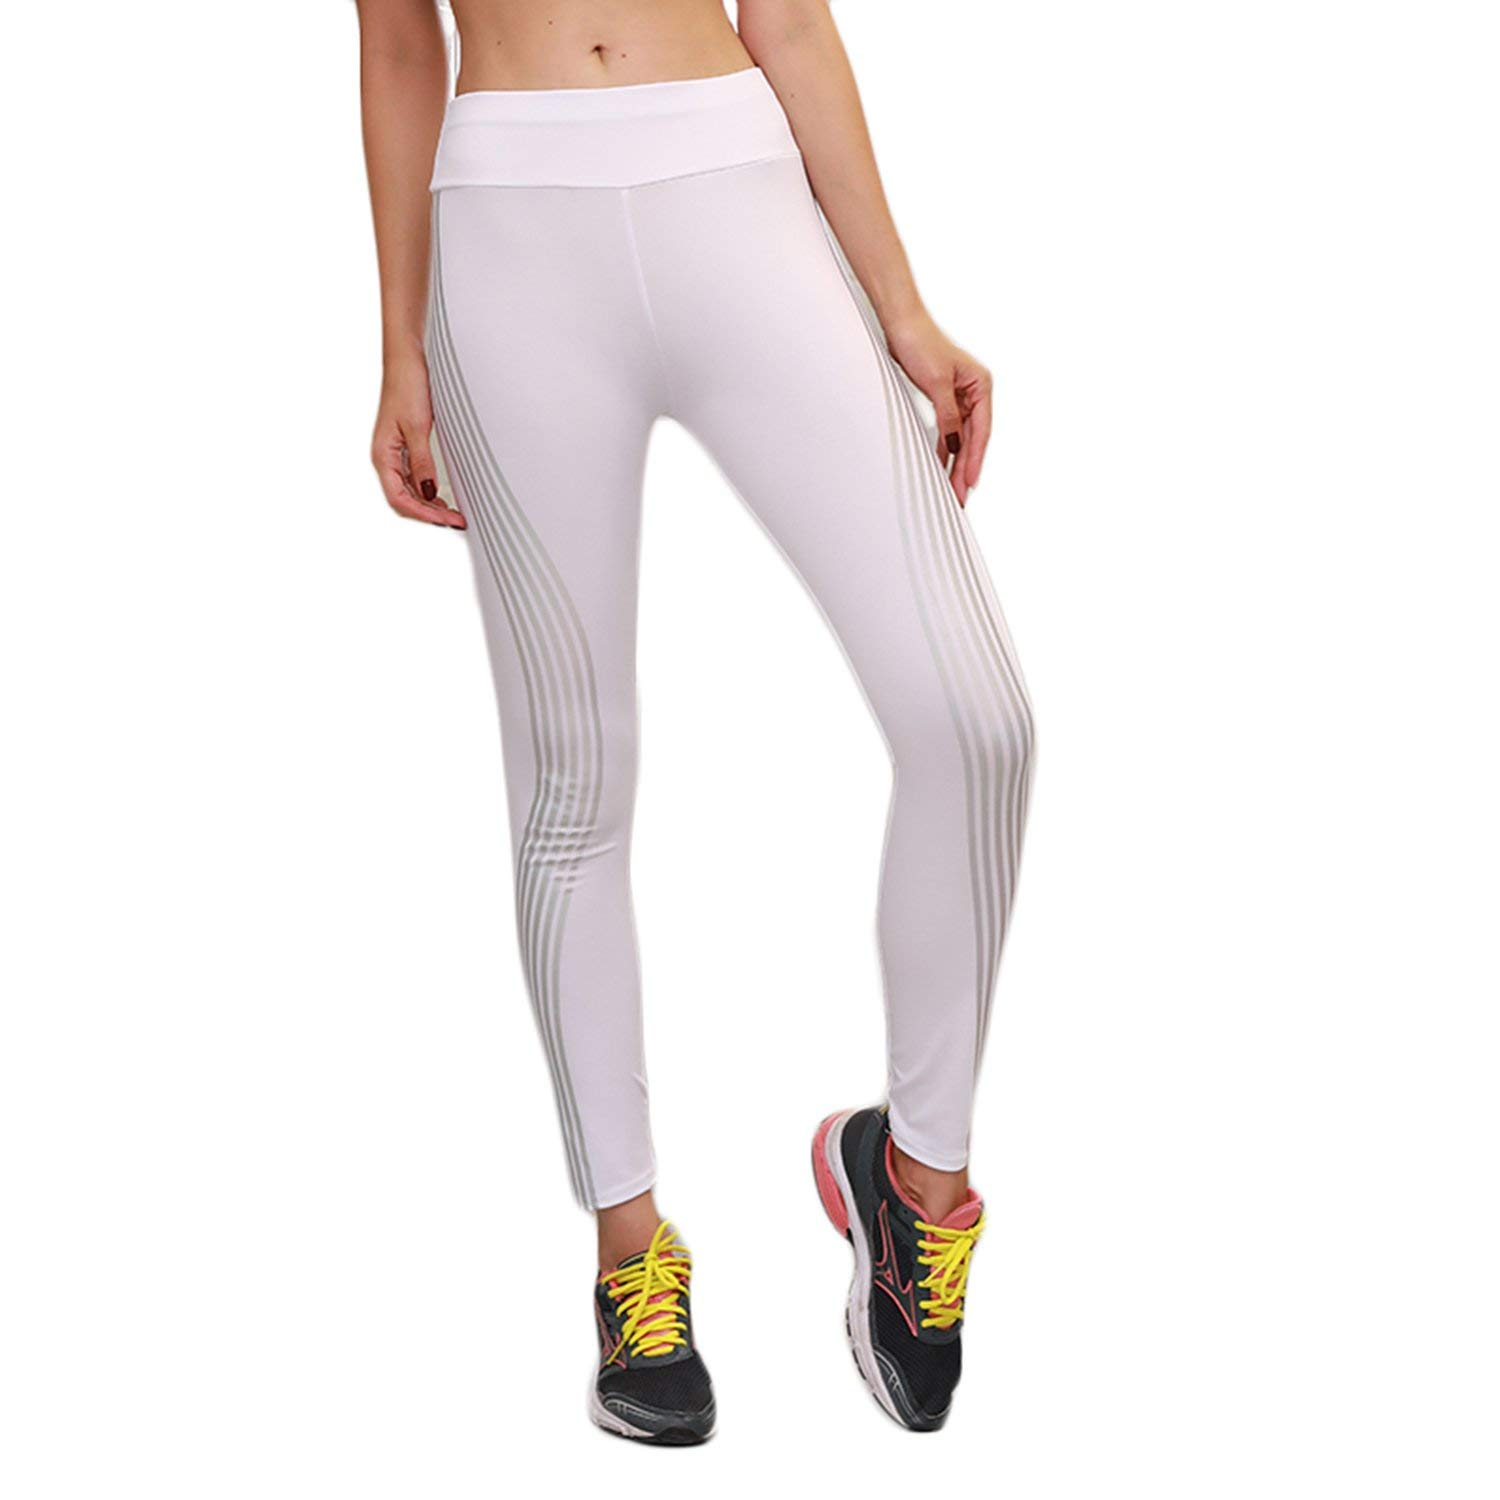 a6390365b2792 Get Quotations · Women's Reflective Yoga Leggings Shiny Stripes Side Sports Fitness  Stretch Workout Gym Leggings Athletic Pants